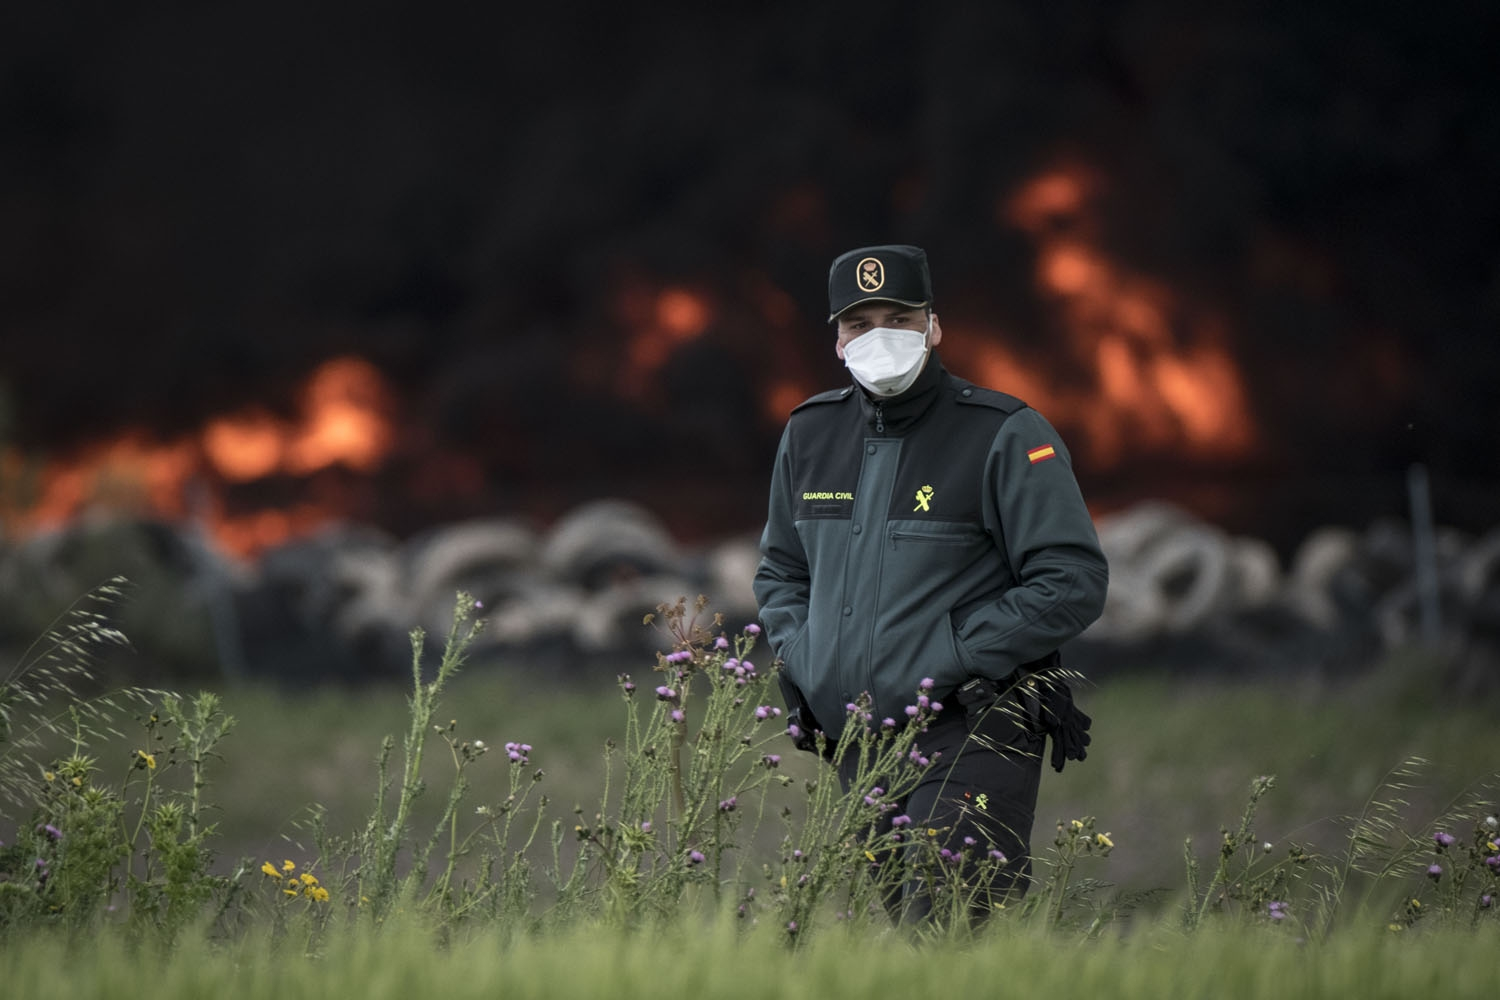 A civil guard with a mask walks past a pile of tyres burning in an uncontrolled dump near the town of Sesena, after a fire brokeout early on May 13, 2016